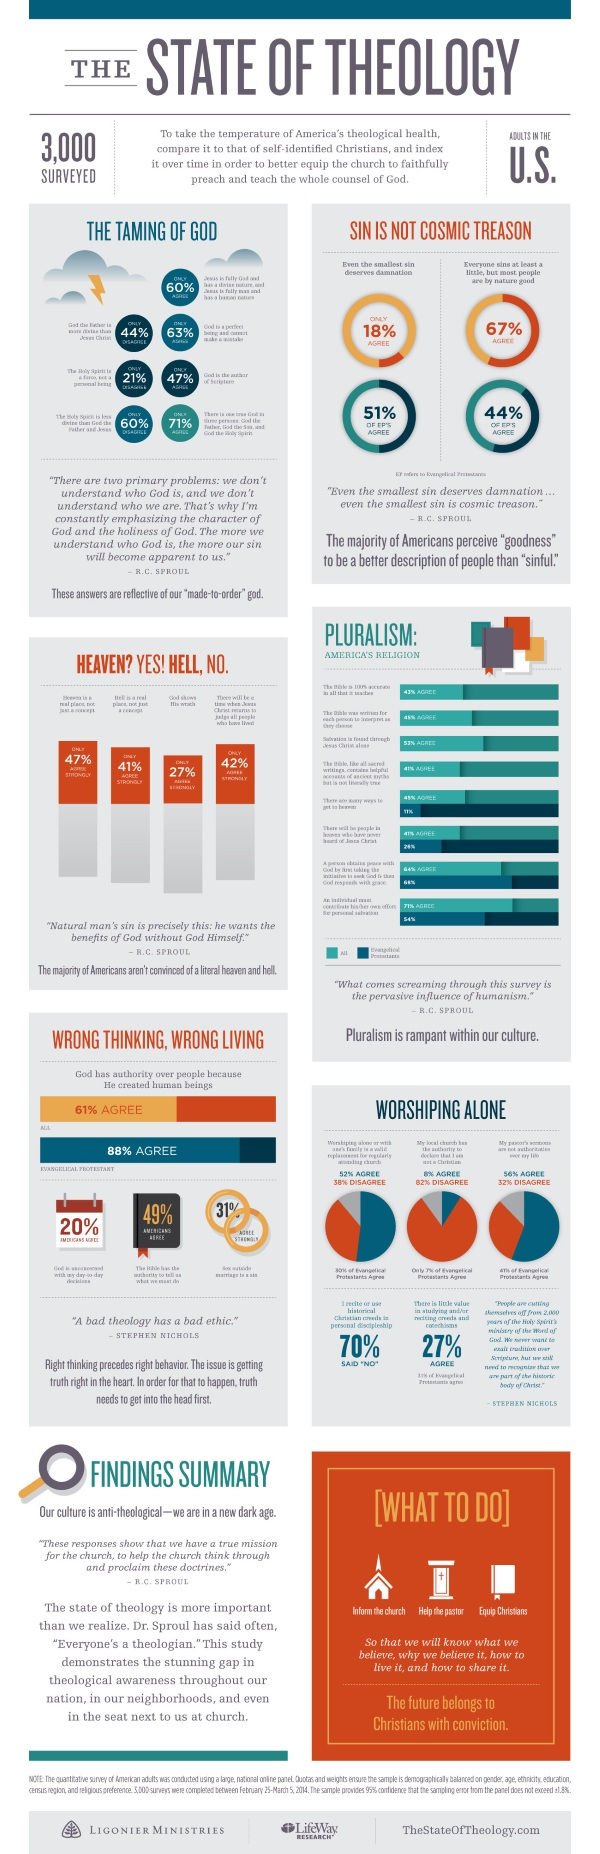 TheStateOfTheology-Infographic_Small